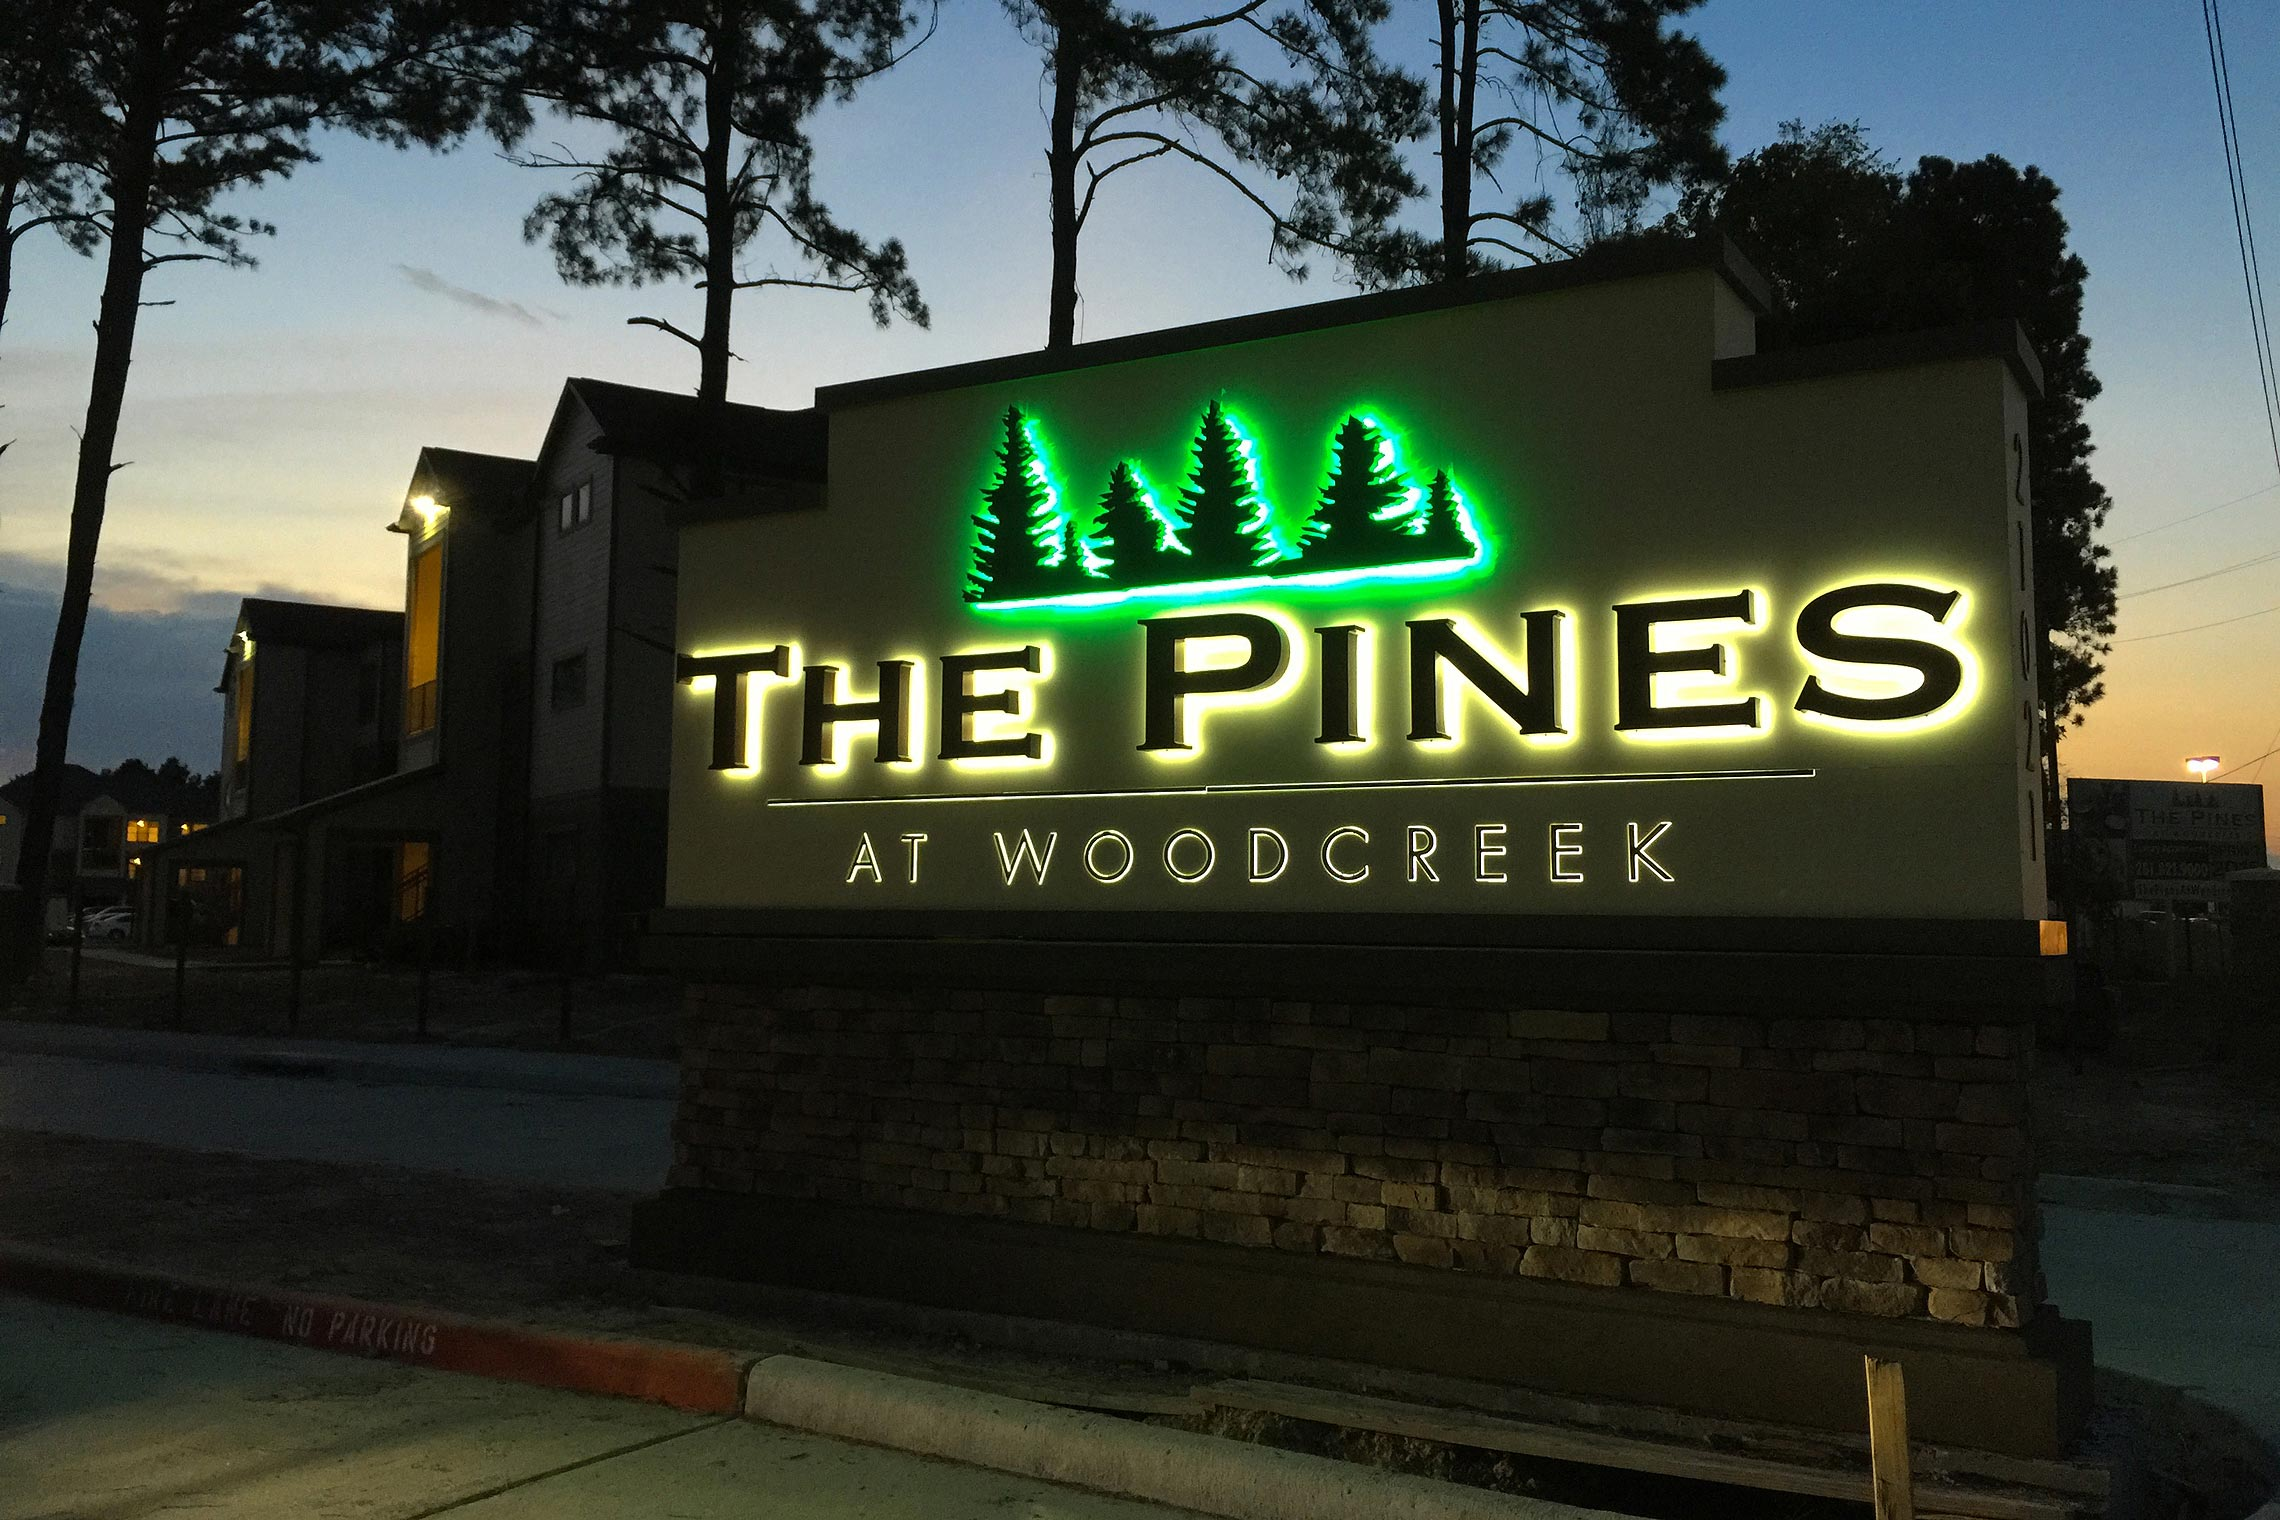 The Pines At Woodcreek Affordable Sign Robinson Creative